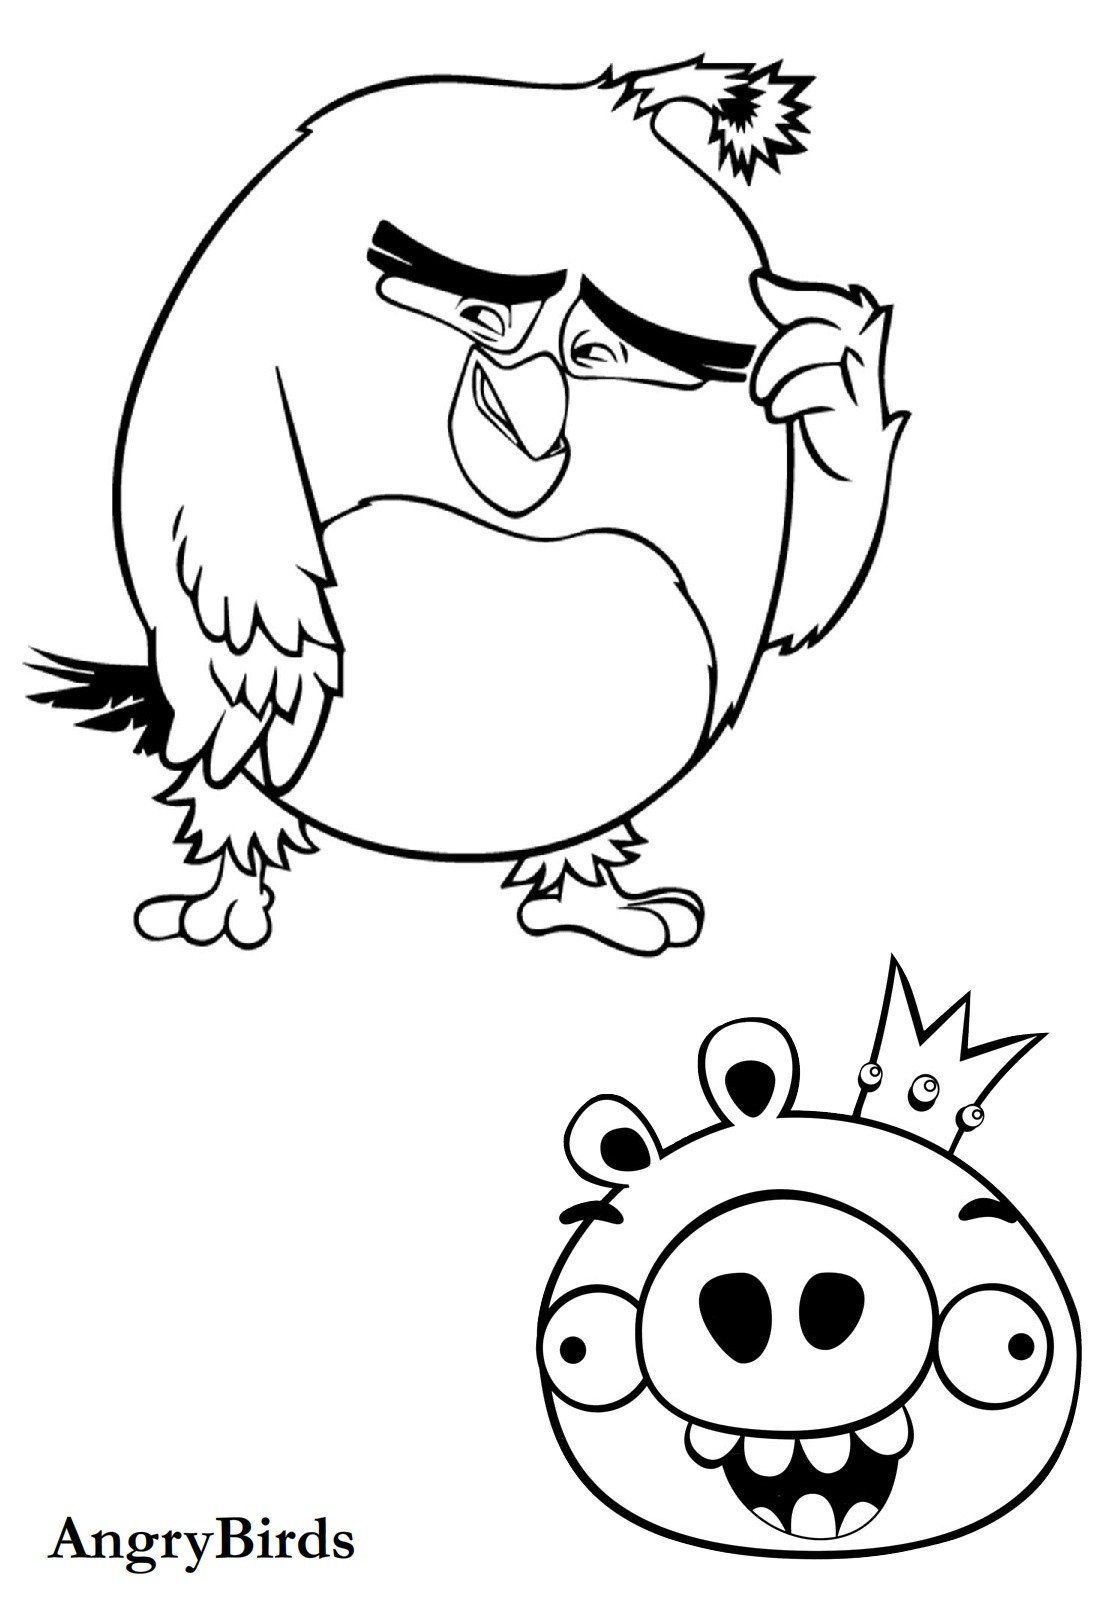 Angry Bird Coloring Pages Pdf 14 Angry Bird Coloring Pages Rovio Angry Birds Coloring In 2020 Bird Coloring Pages Cartoon Coloring Pages Animal Coloring Pages